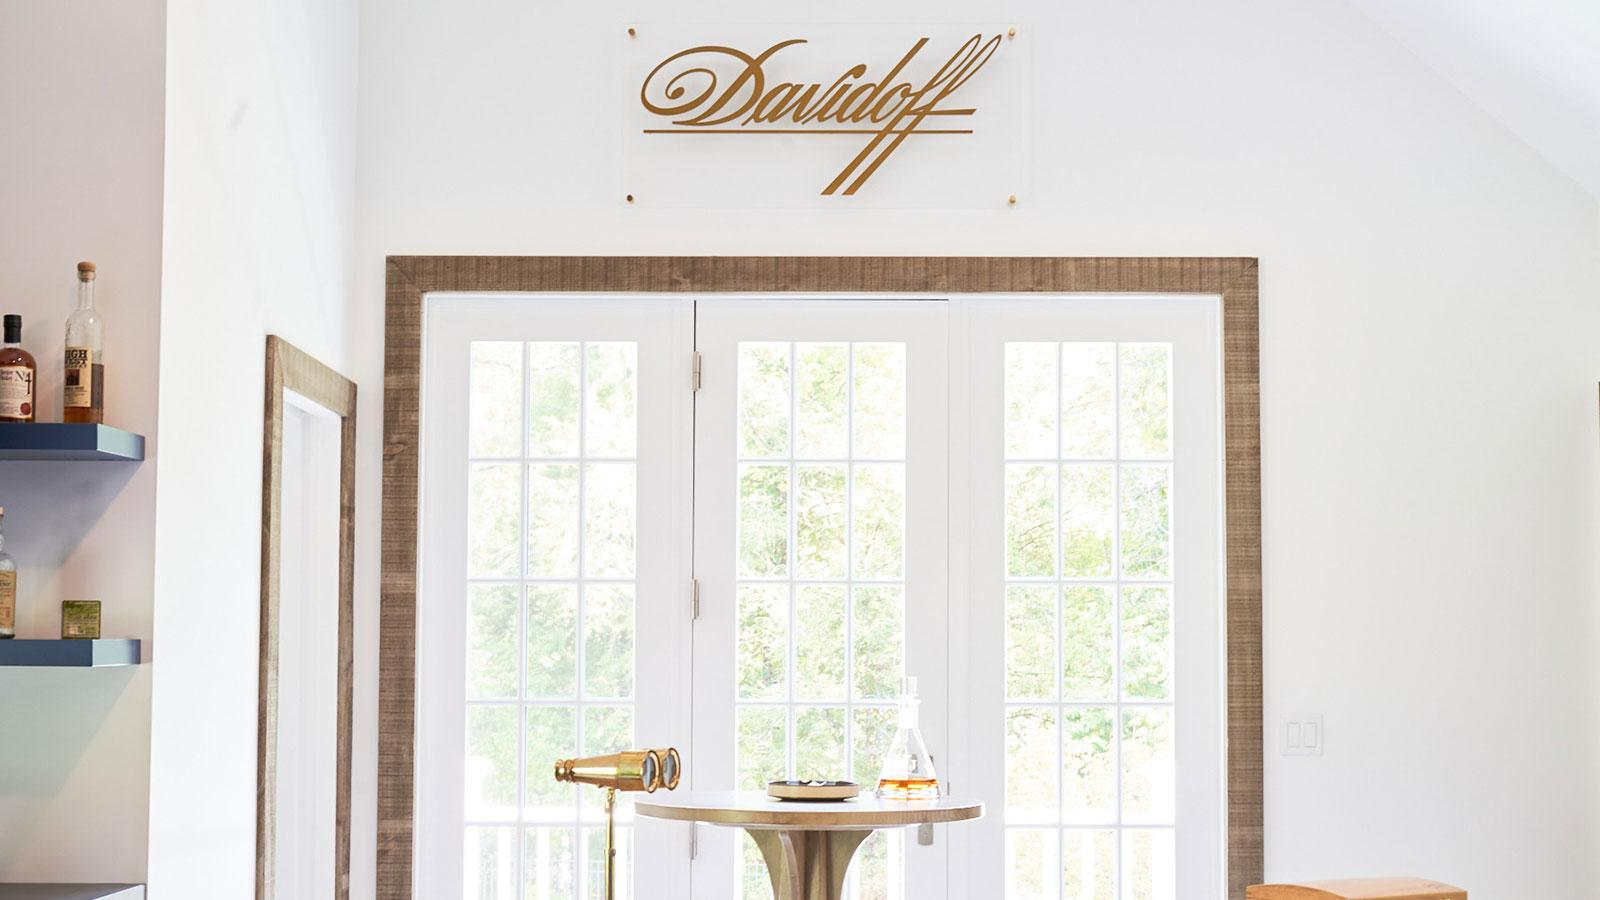 Davidoff wall photo